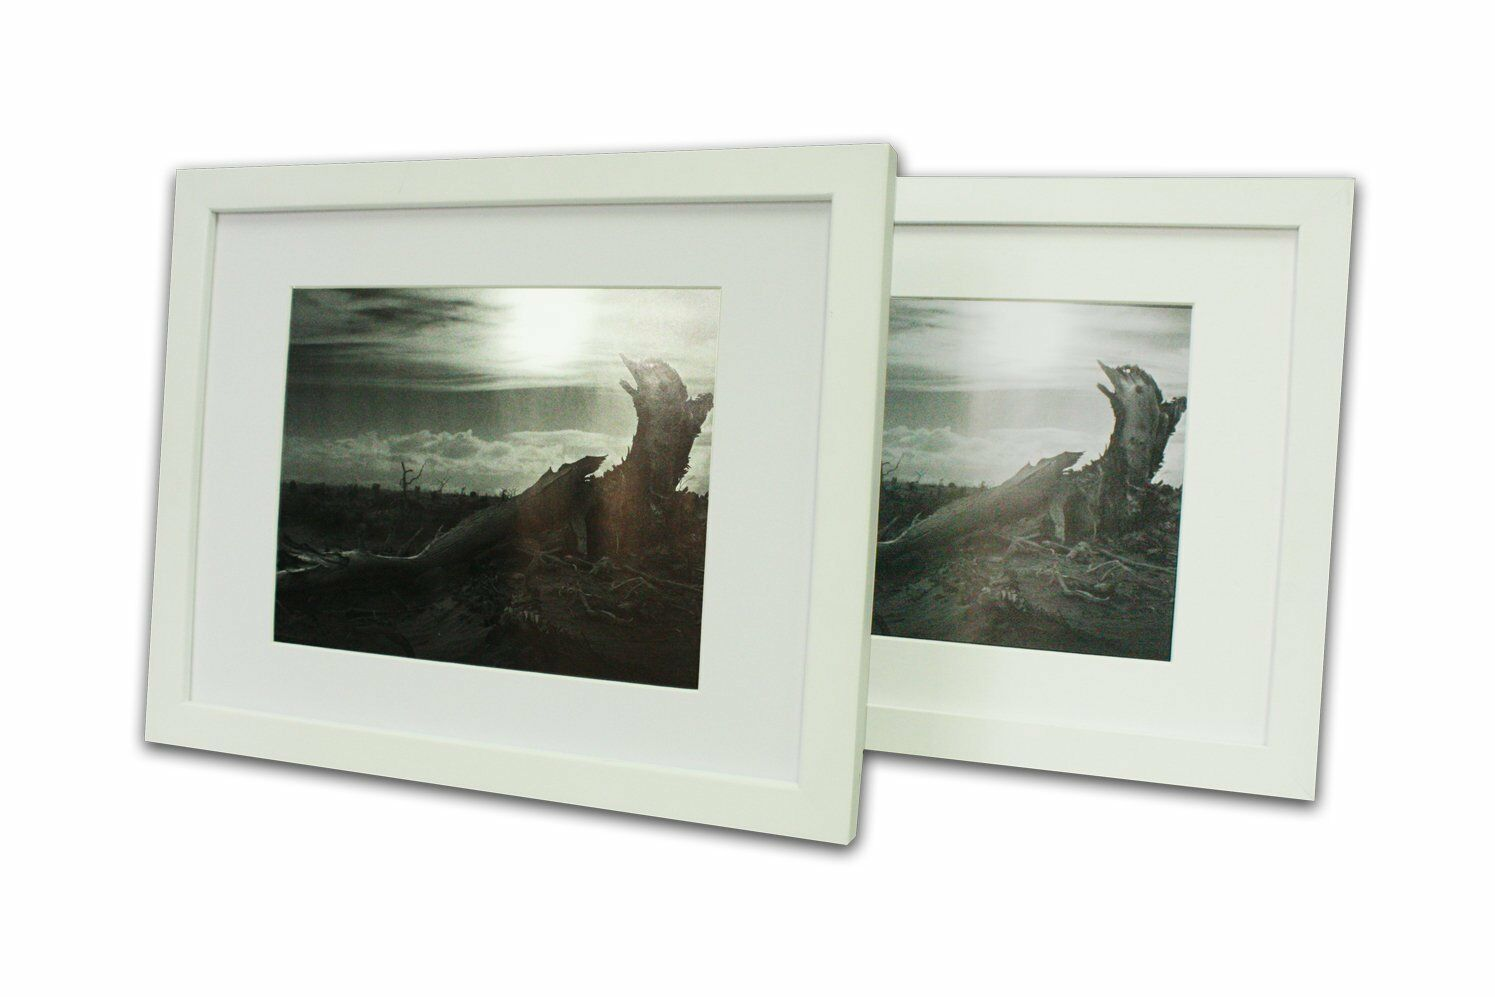 SET OF 2 White Photo Wood Frame 11x14 with Real GLASS Mat for 8x10 ...